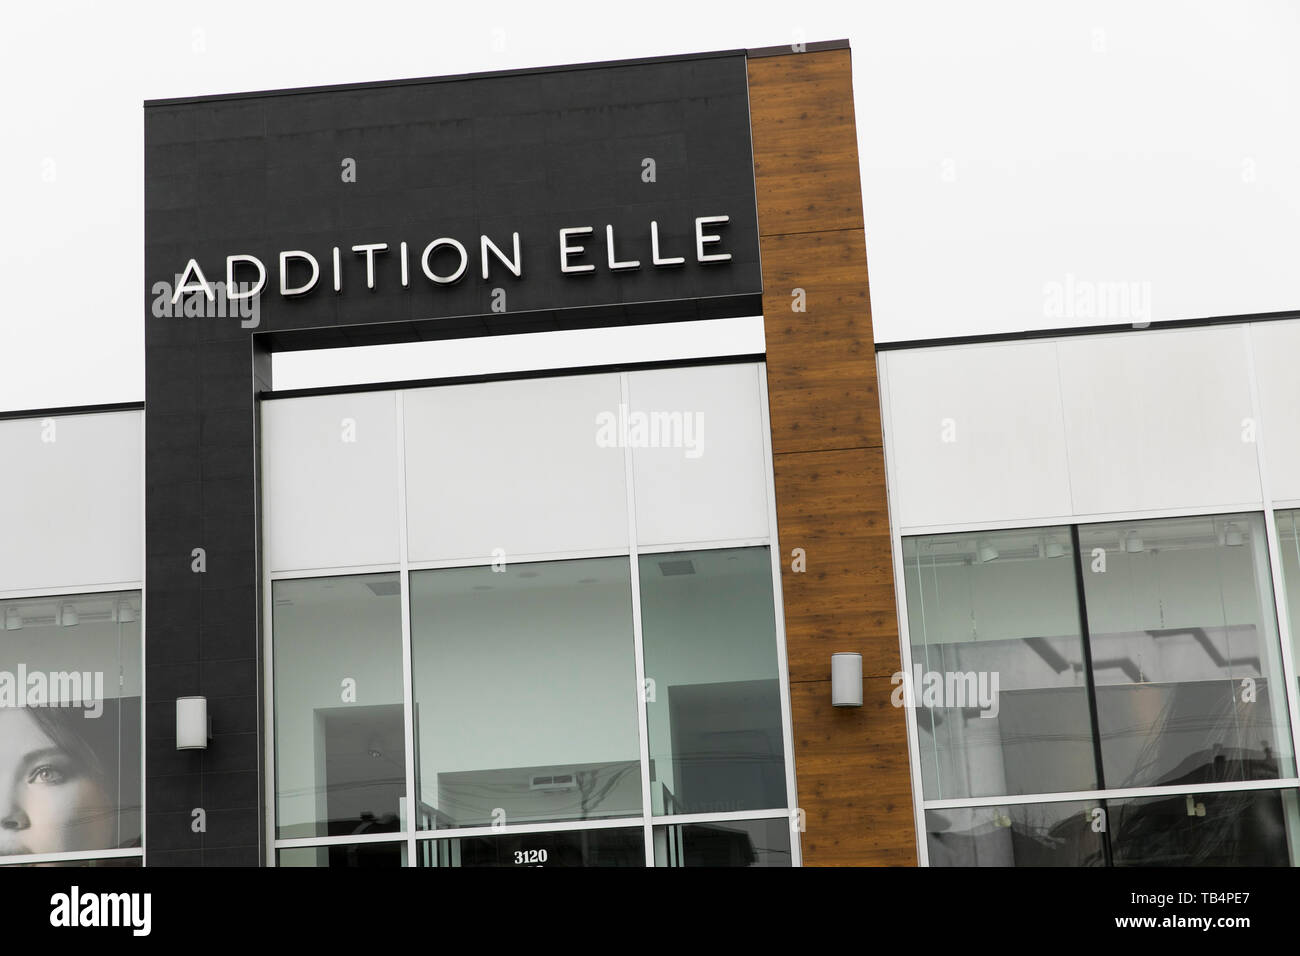 A logo sign outside of a Addition Elle retail store location in Vaudreuil-Dorion, Quebec, Canada, on April 21, 2019. - Stock Image